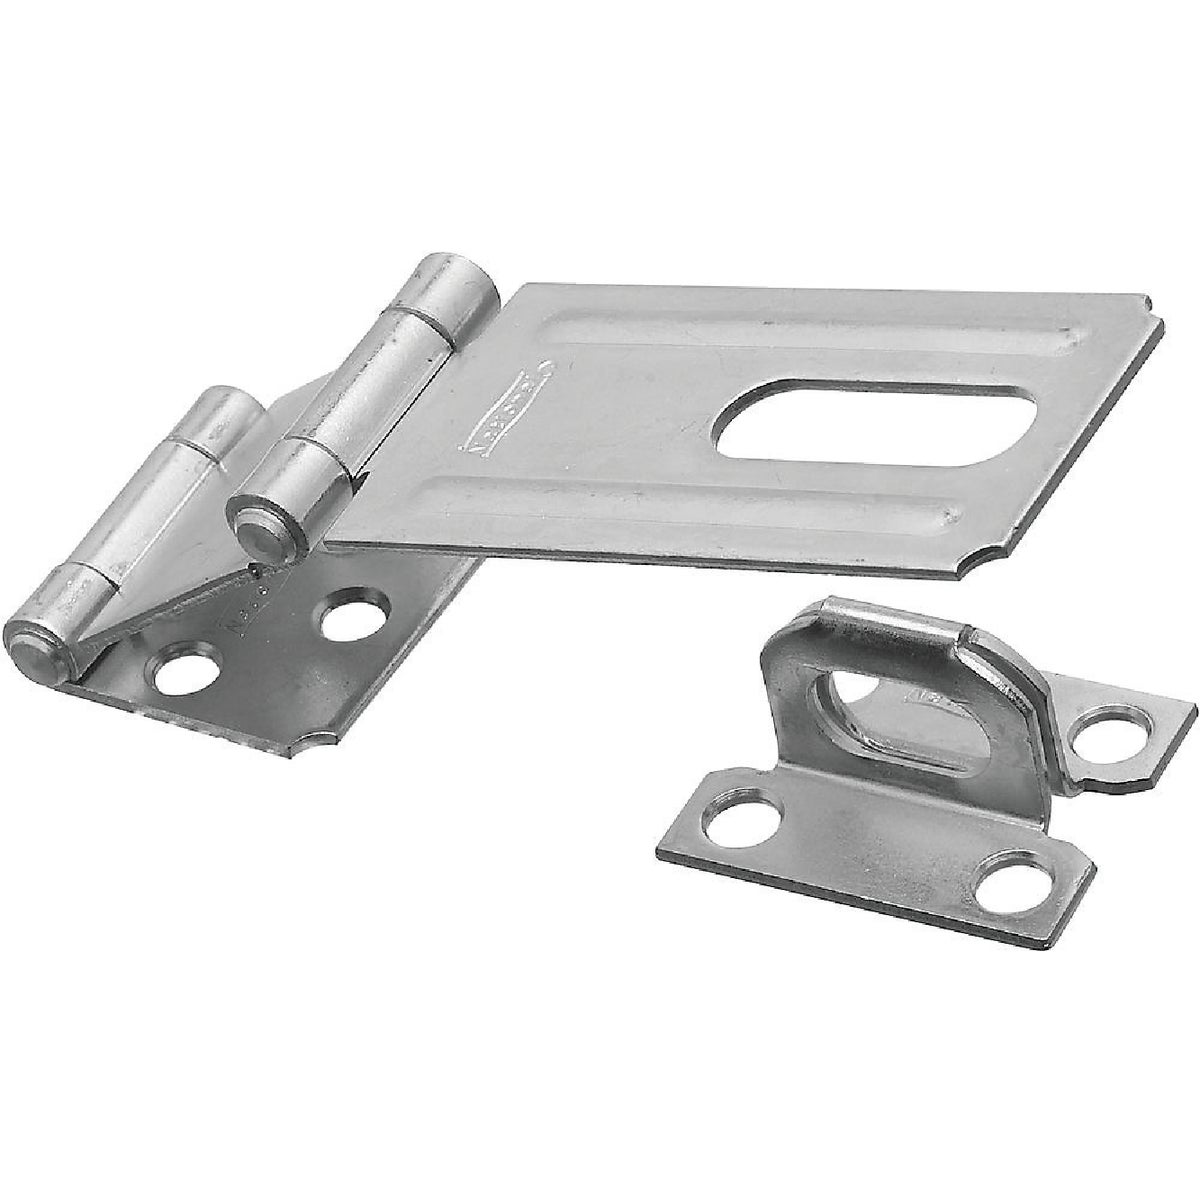 "3-1/4"" DOUBLE HINGE HASP - N103259 by National Mfg Co"